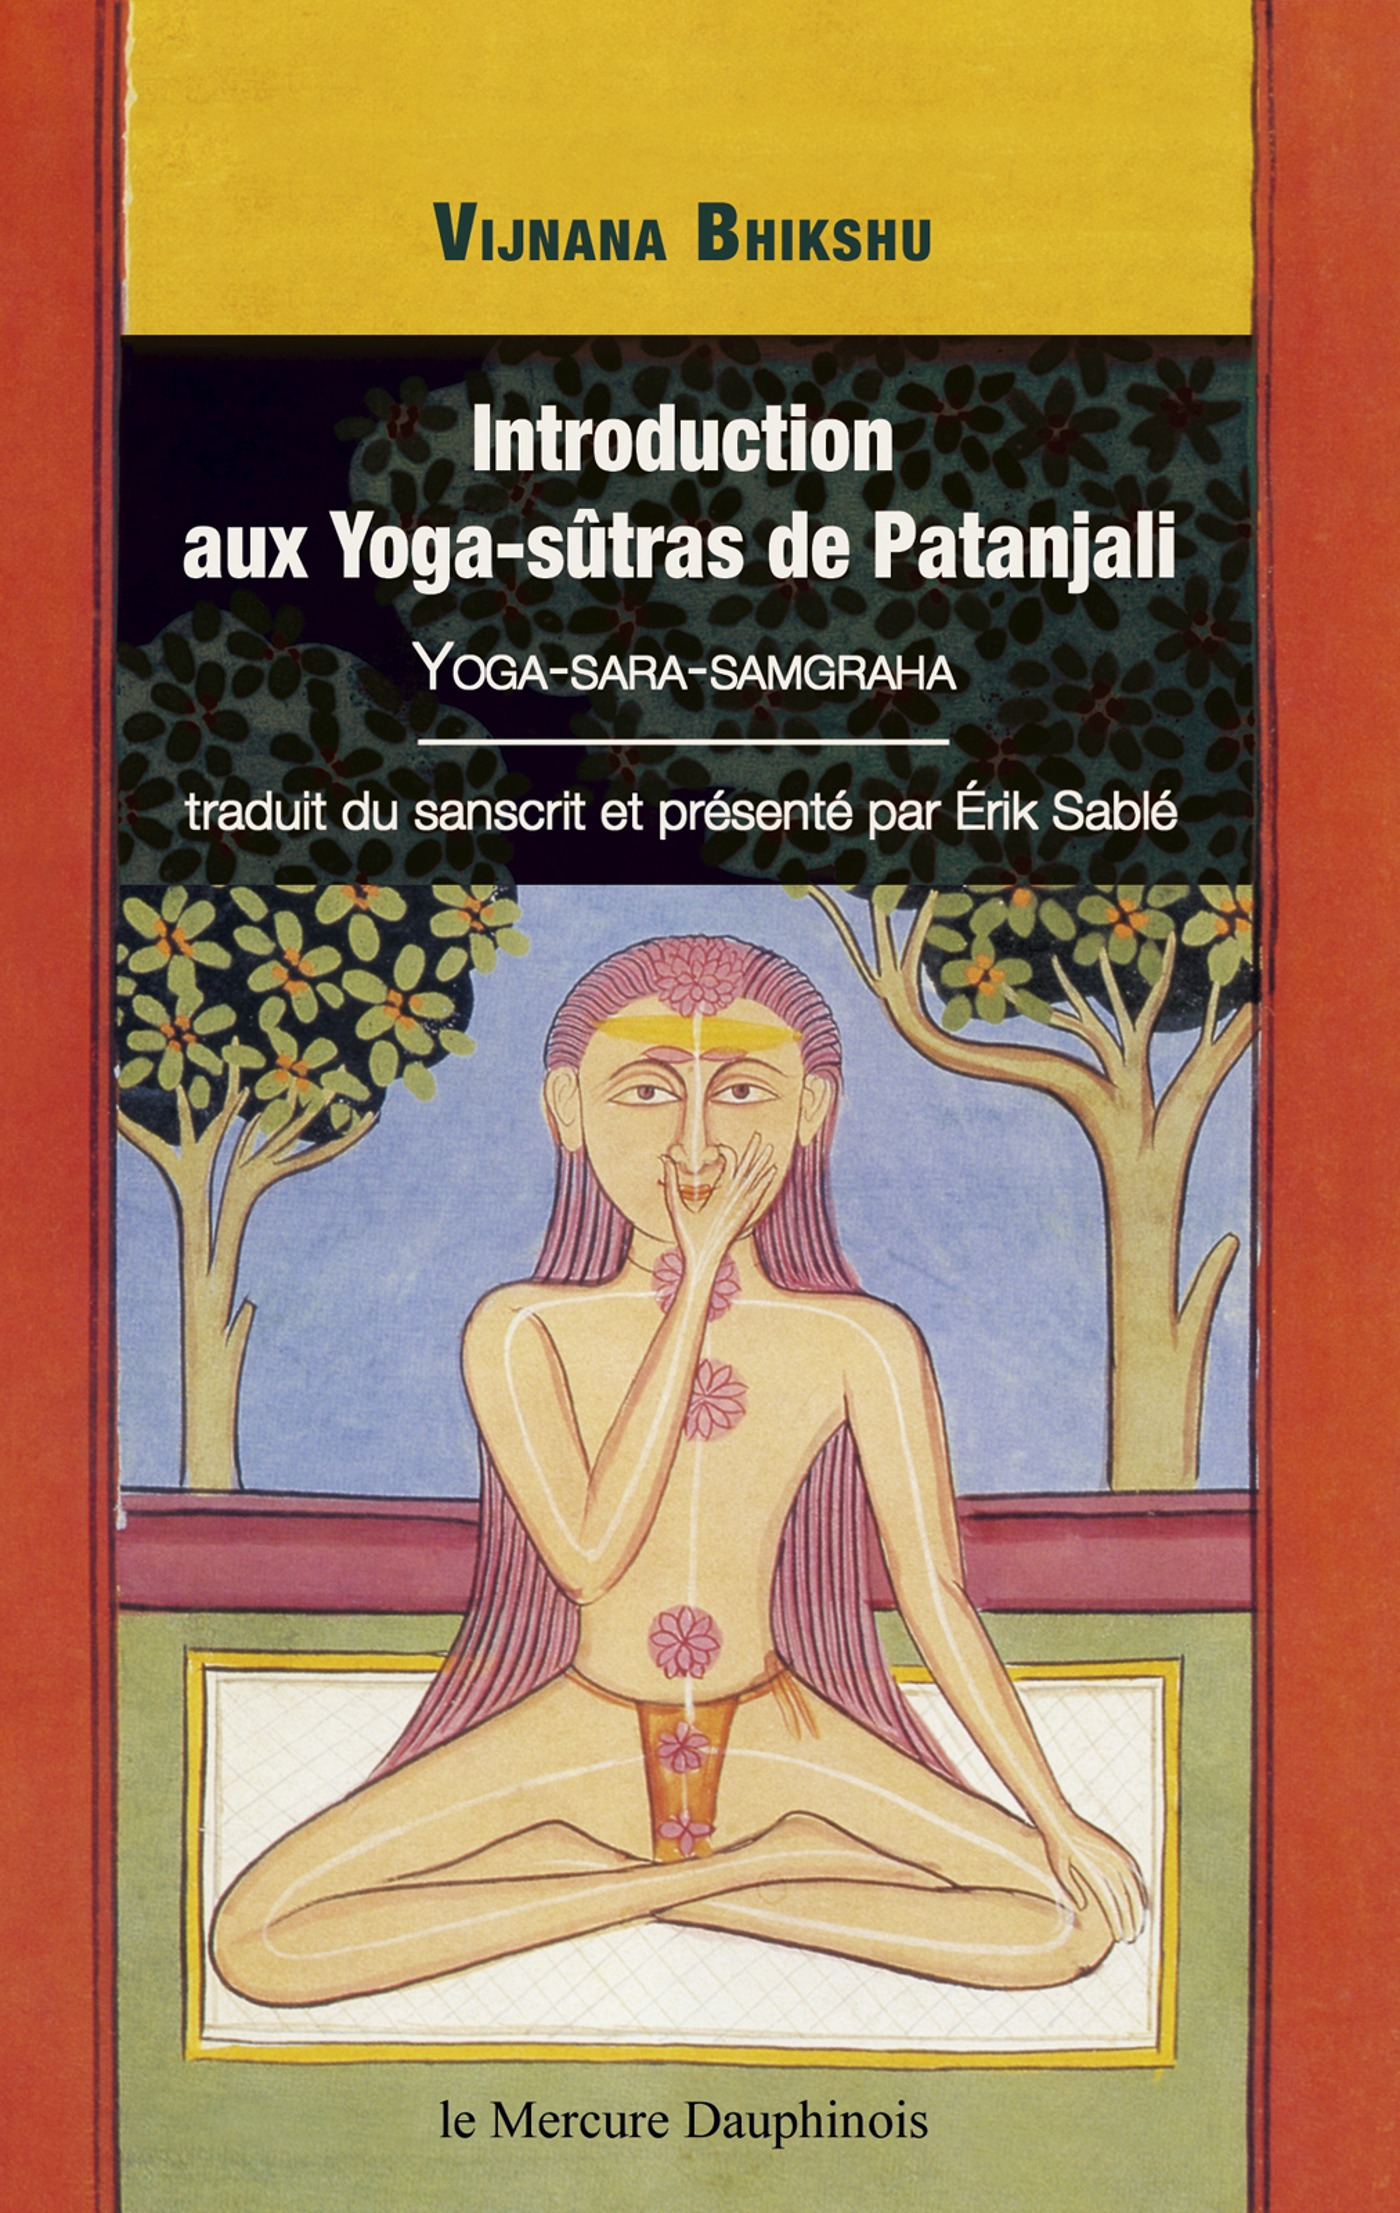 Erik Sablé Introduction aux Yoga-sûtras de Patanjali